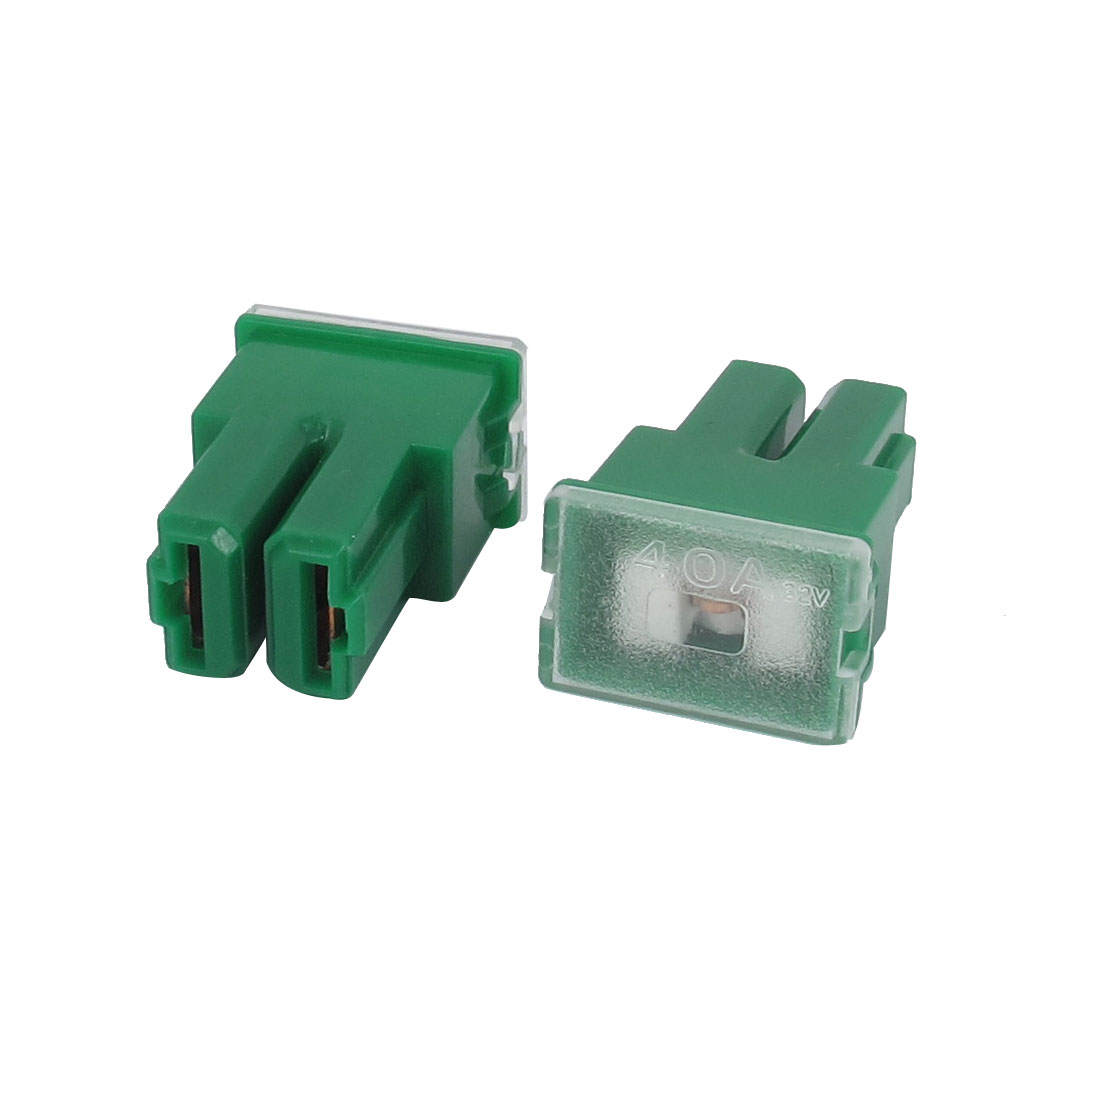 Auto Car Truck 40A 32V Female PAL 2 Terminal Slow Blow Fuse Green 2Pcs